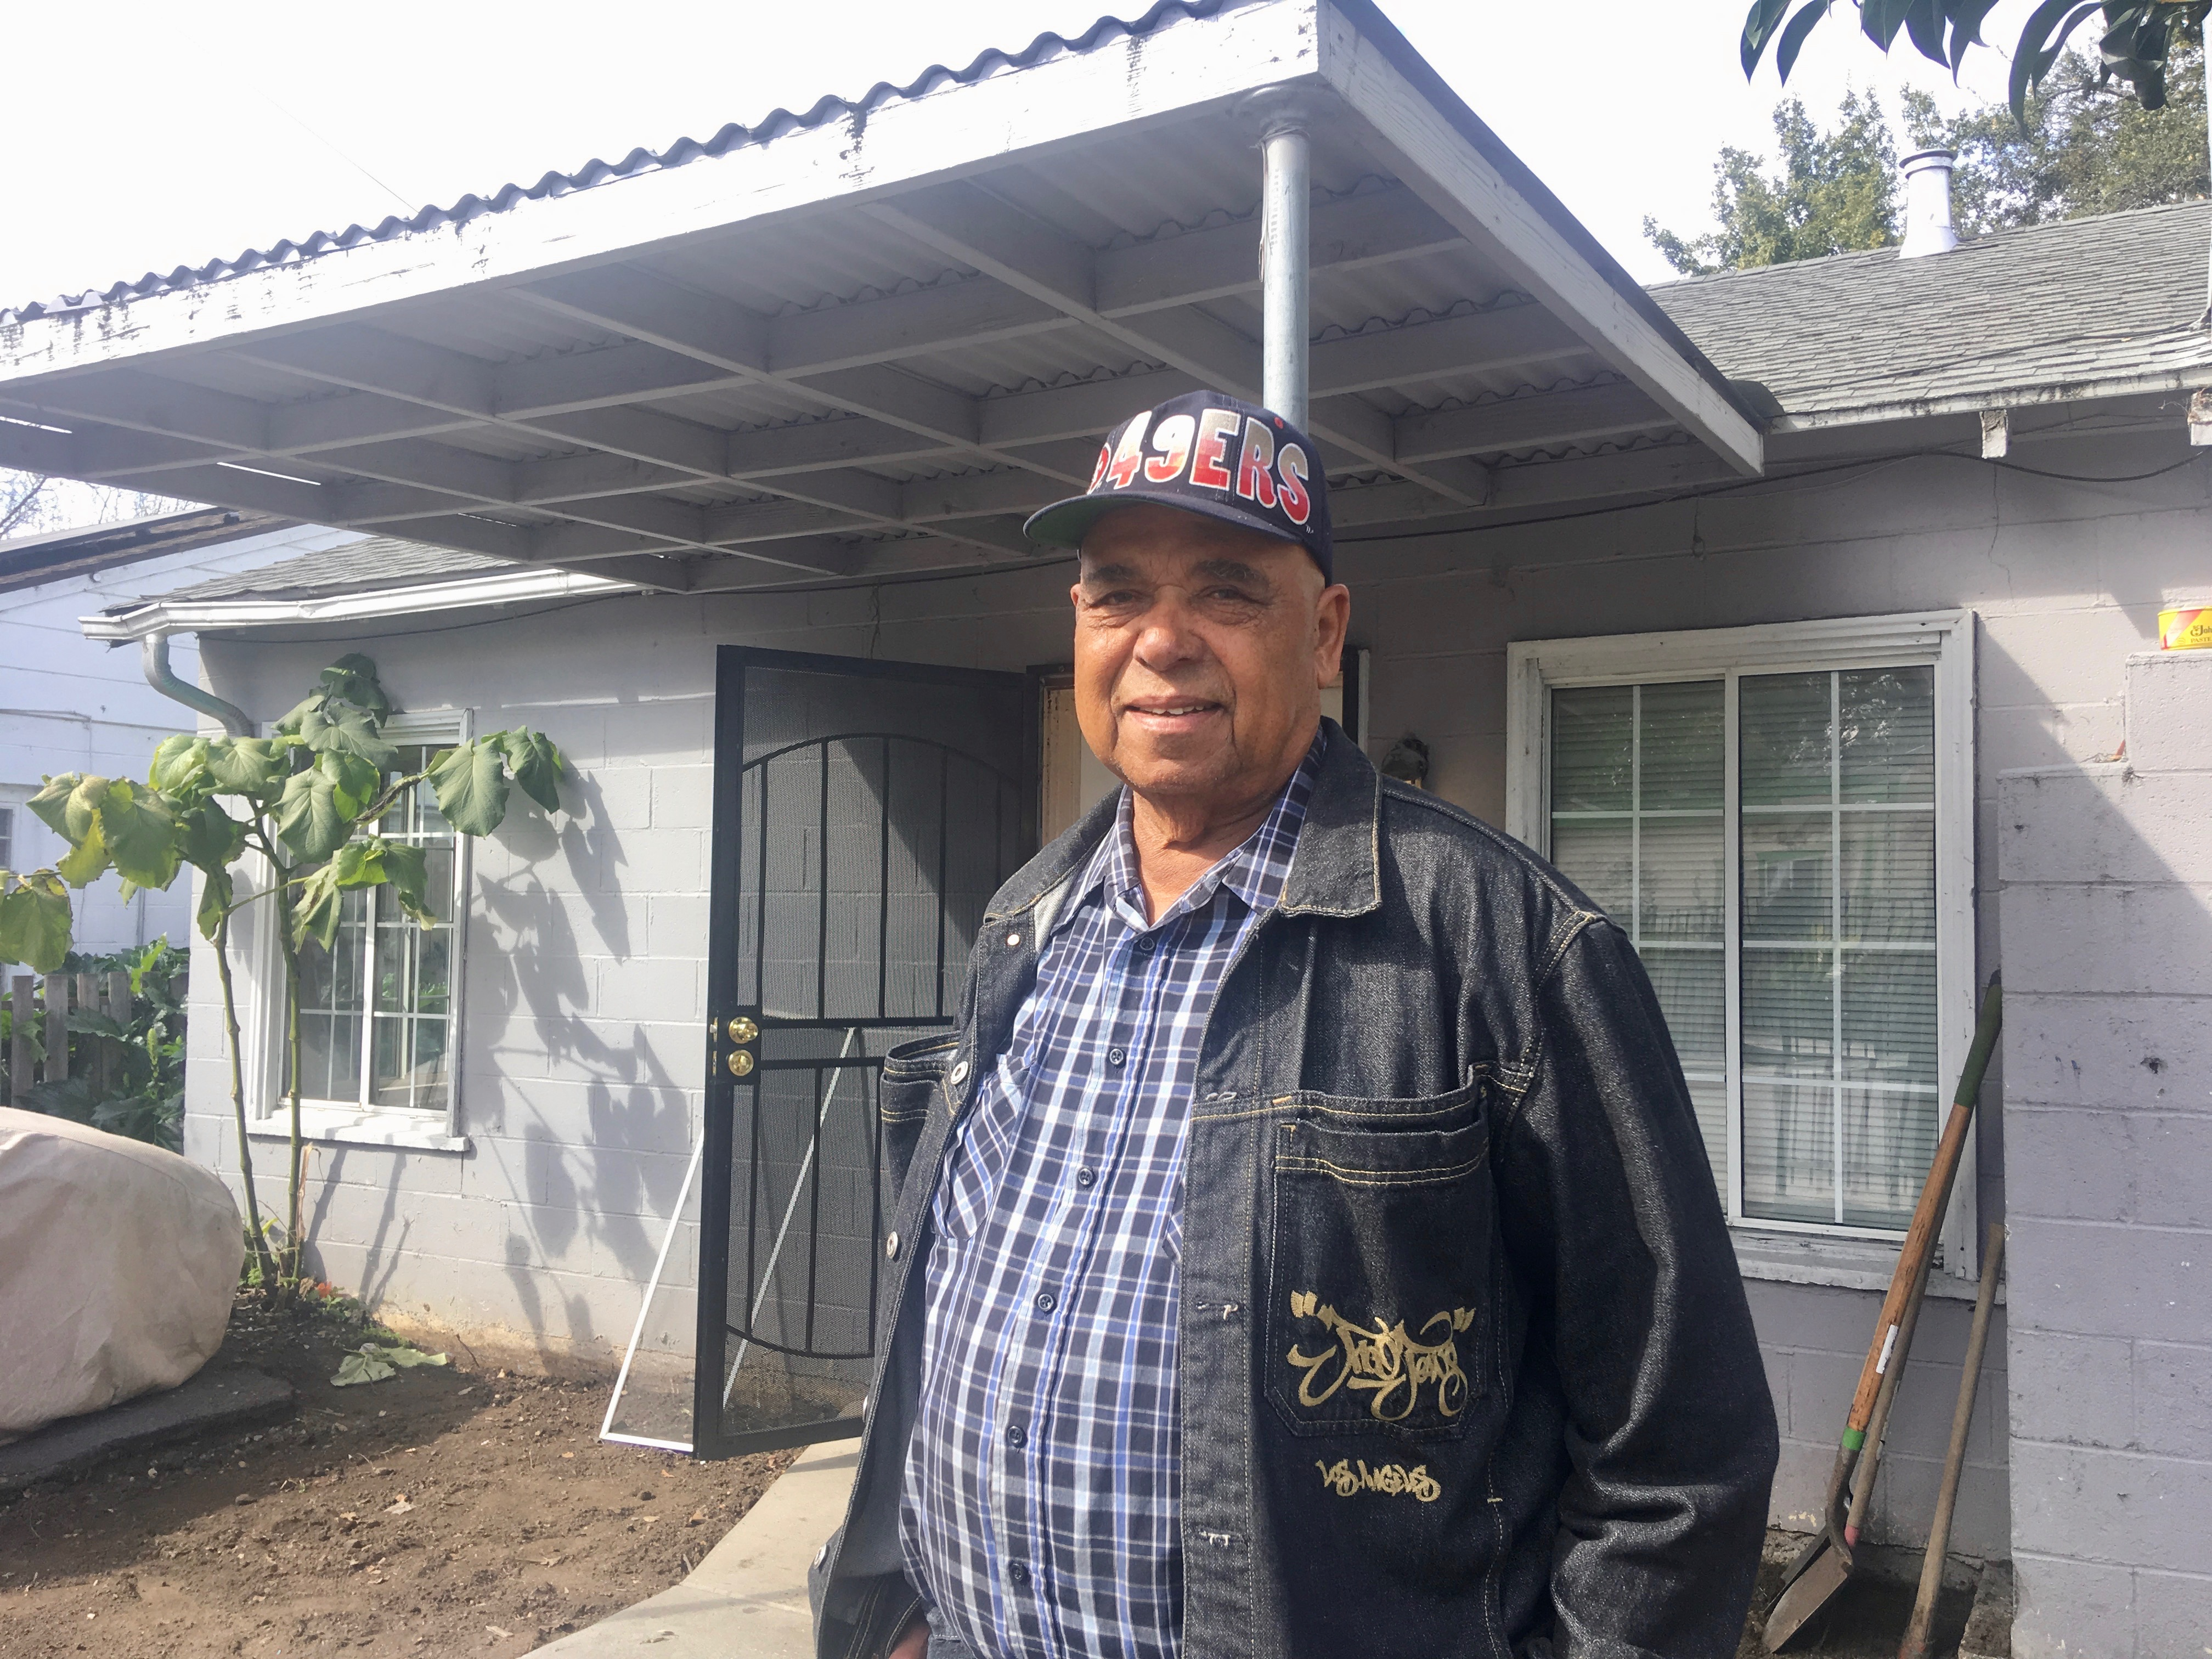 Allen McIntyre, a longtime East Palo Alto resident who now lives in Modesto, says he saw improvements at the water company after Katherine Loudd took over management in the late 1980s, but that he observed that households were charged differently. (Photo by Kate Bradshaw.)